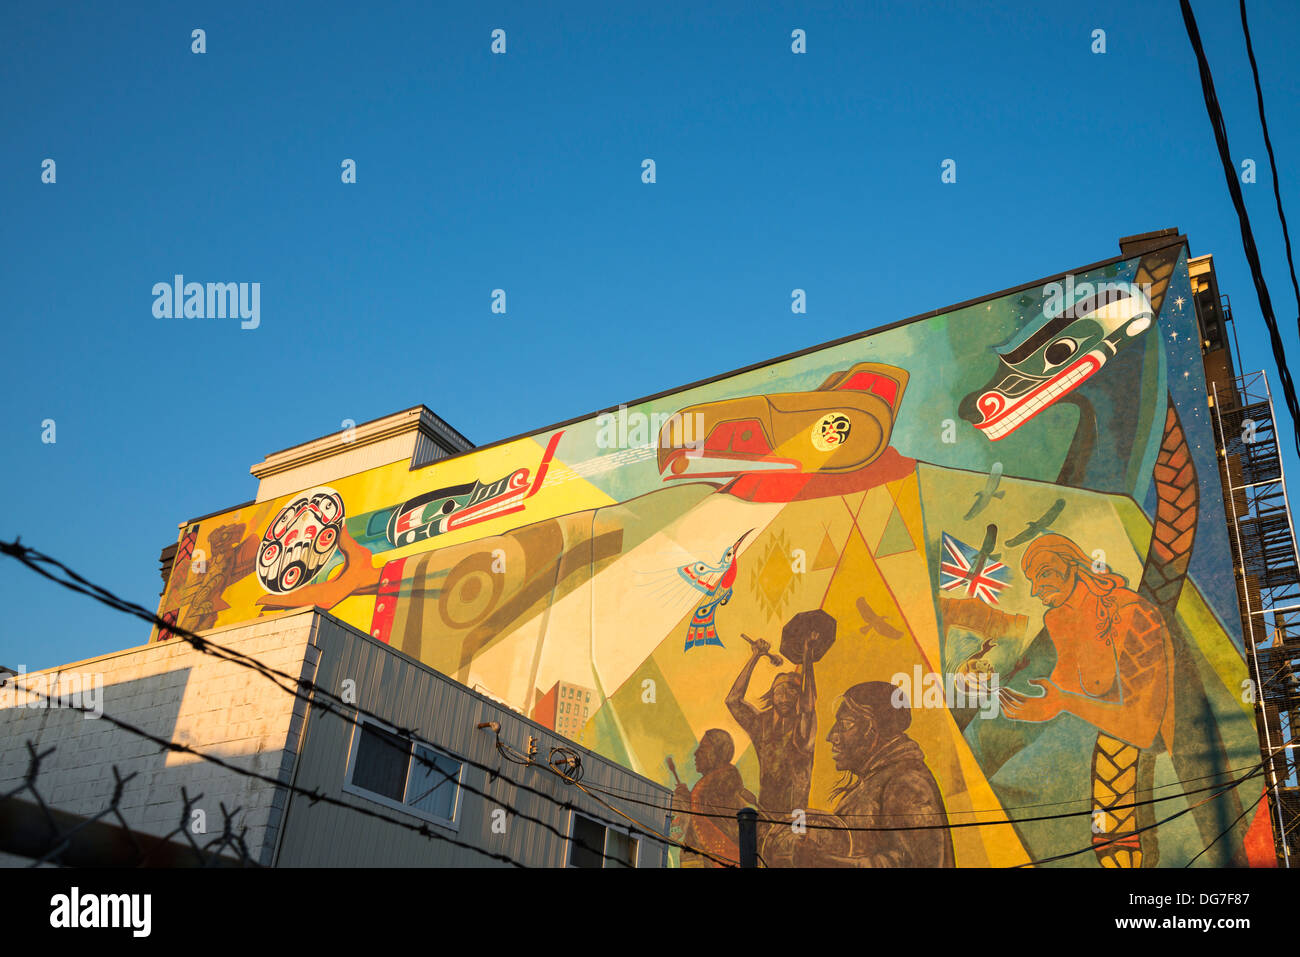 First Nations mural, Hastings Street, DTES, Vancouver, British Columbia, Canada - Stock Image